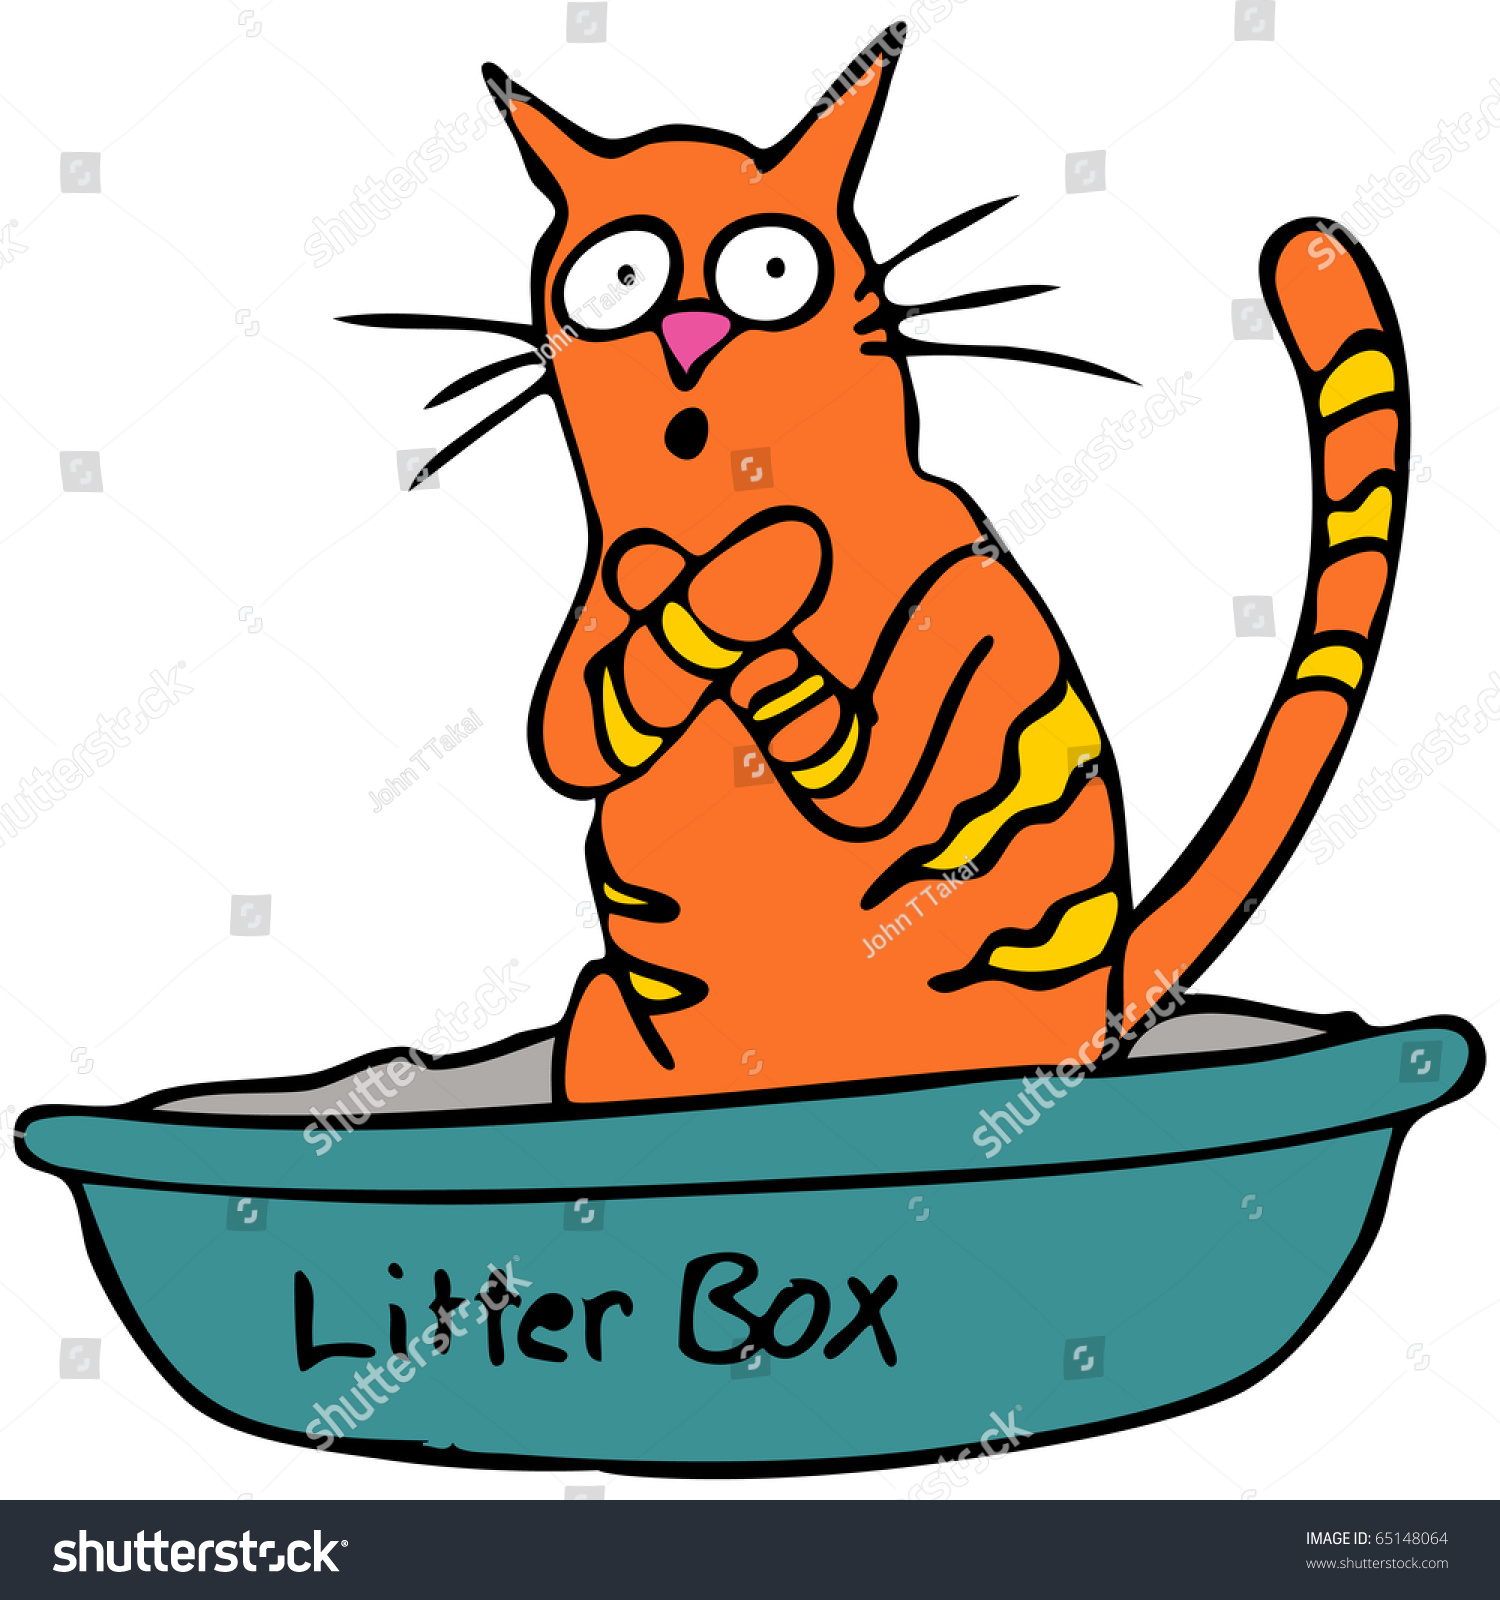 How To Stop A Cat Using Litter Tray